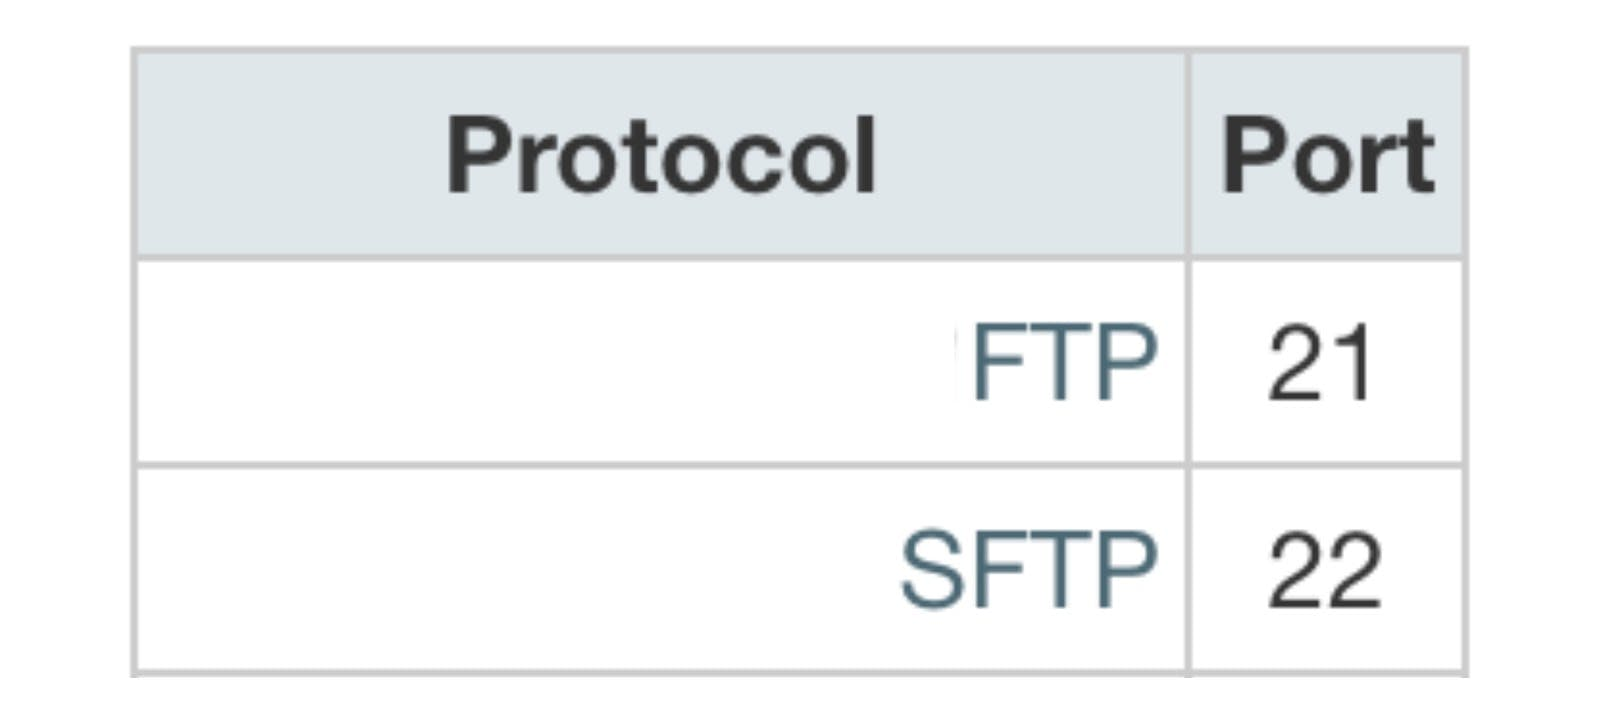 Protocol FTP port 21 and SFTP port 22.